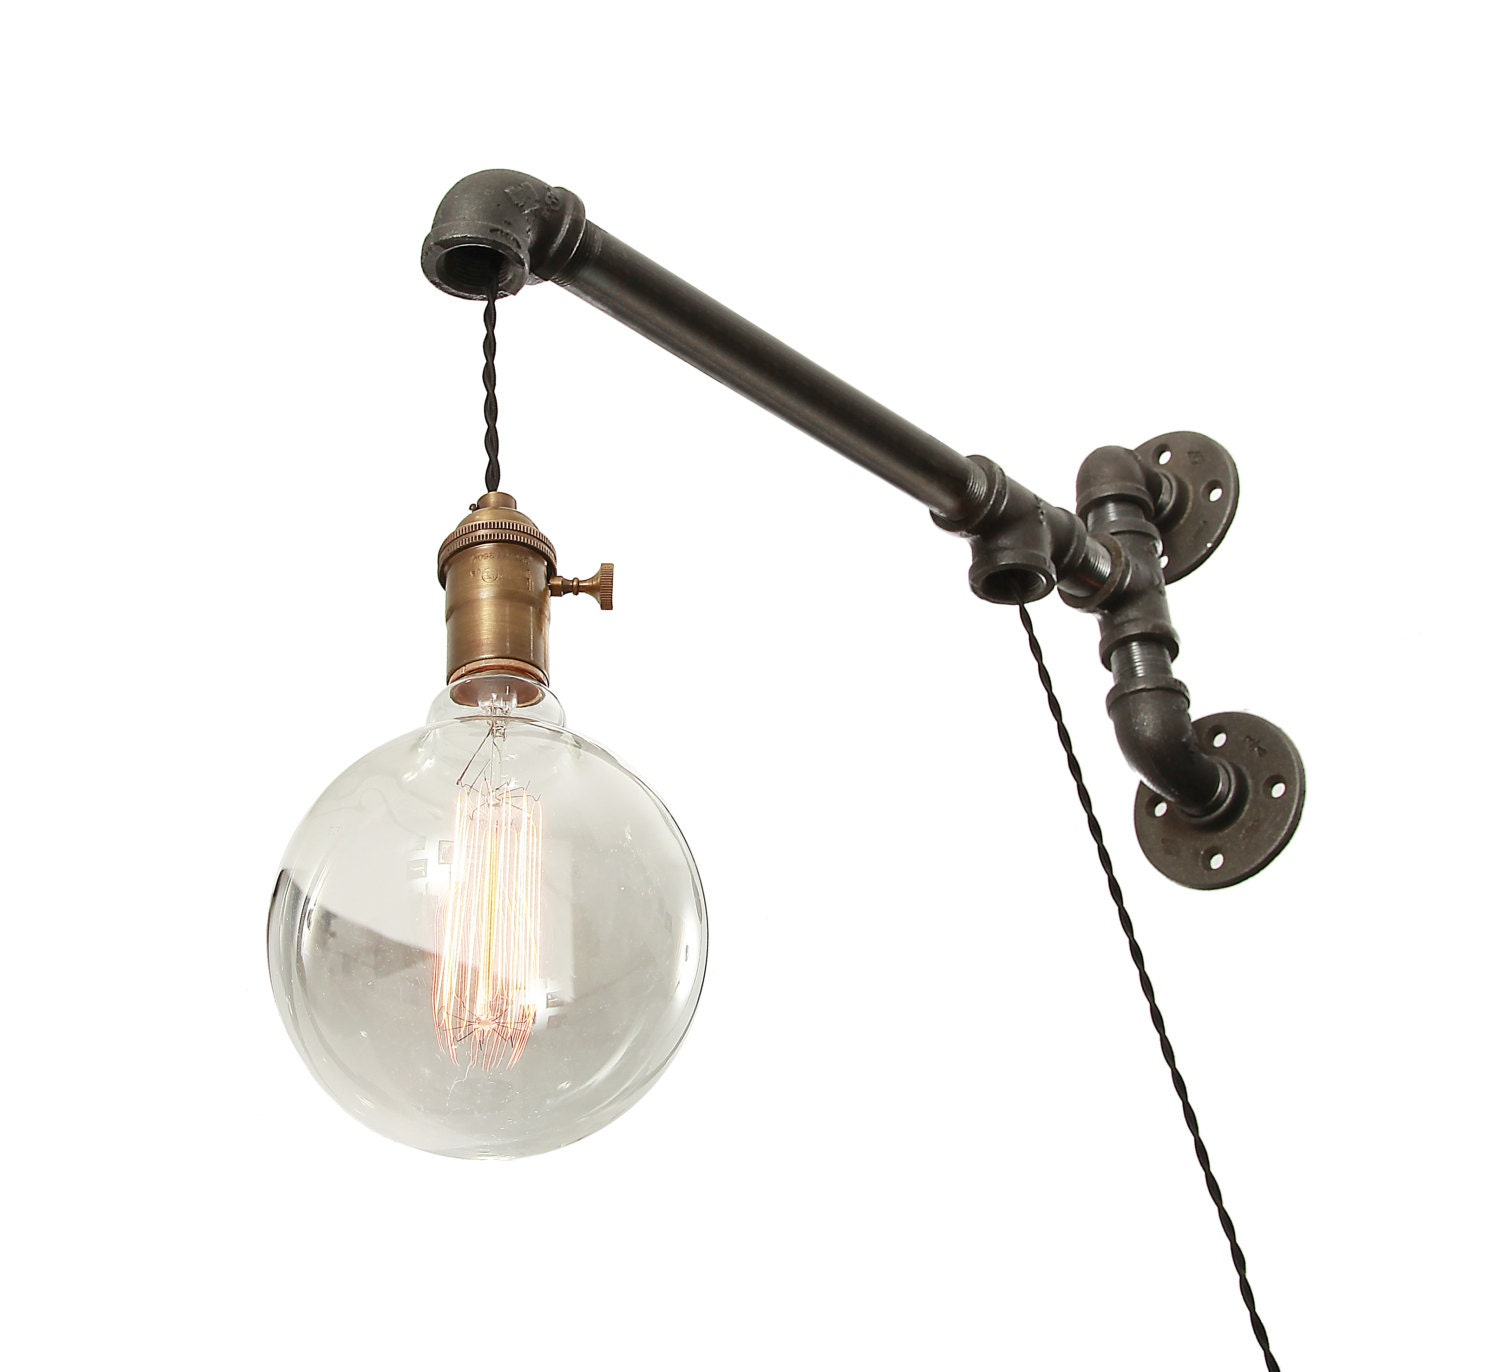 Industrial Pipe Wall Light: Industrial Pipe Wall Light Wall Light Pipe Light Wall